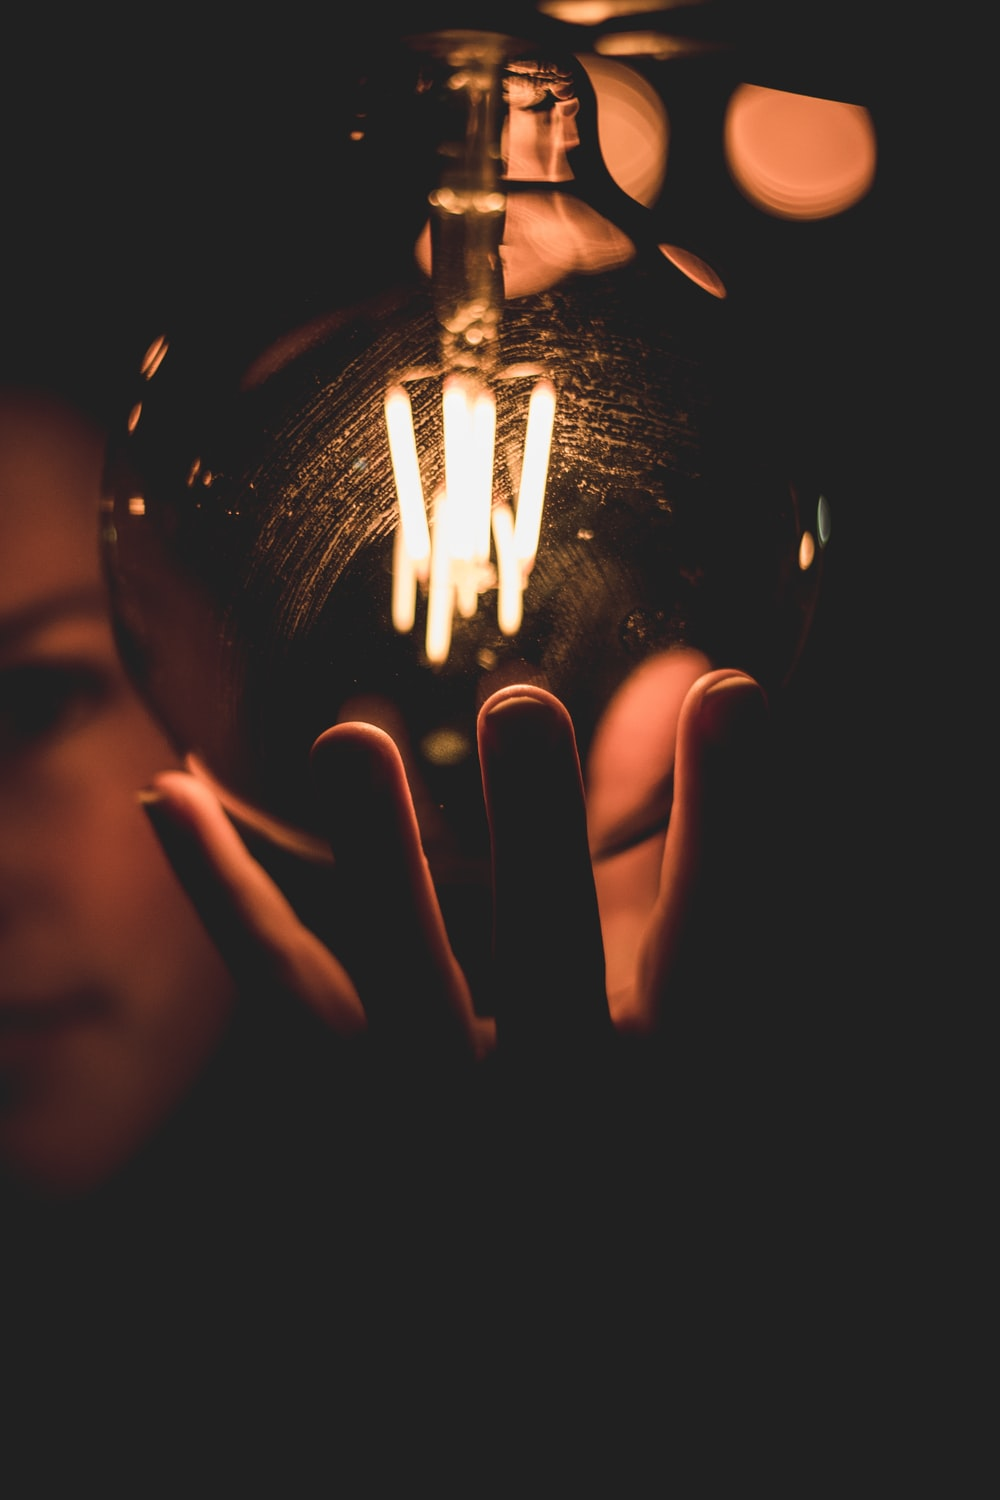 person holding lighted ball with light